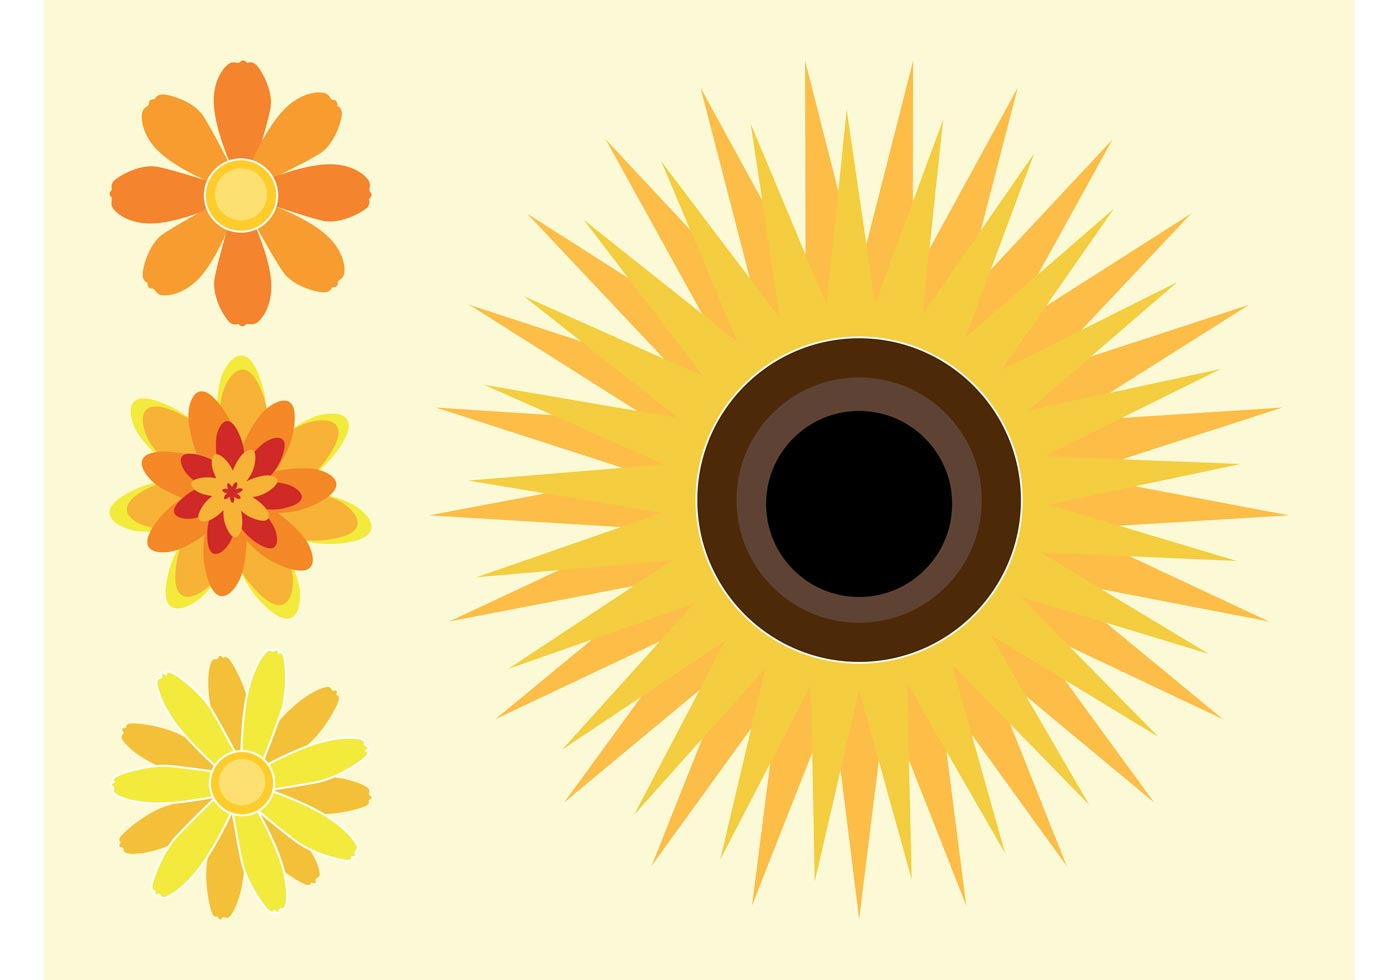 Sunflowers - Download Free Vector Art, Stock Graphics & Images